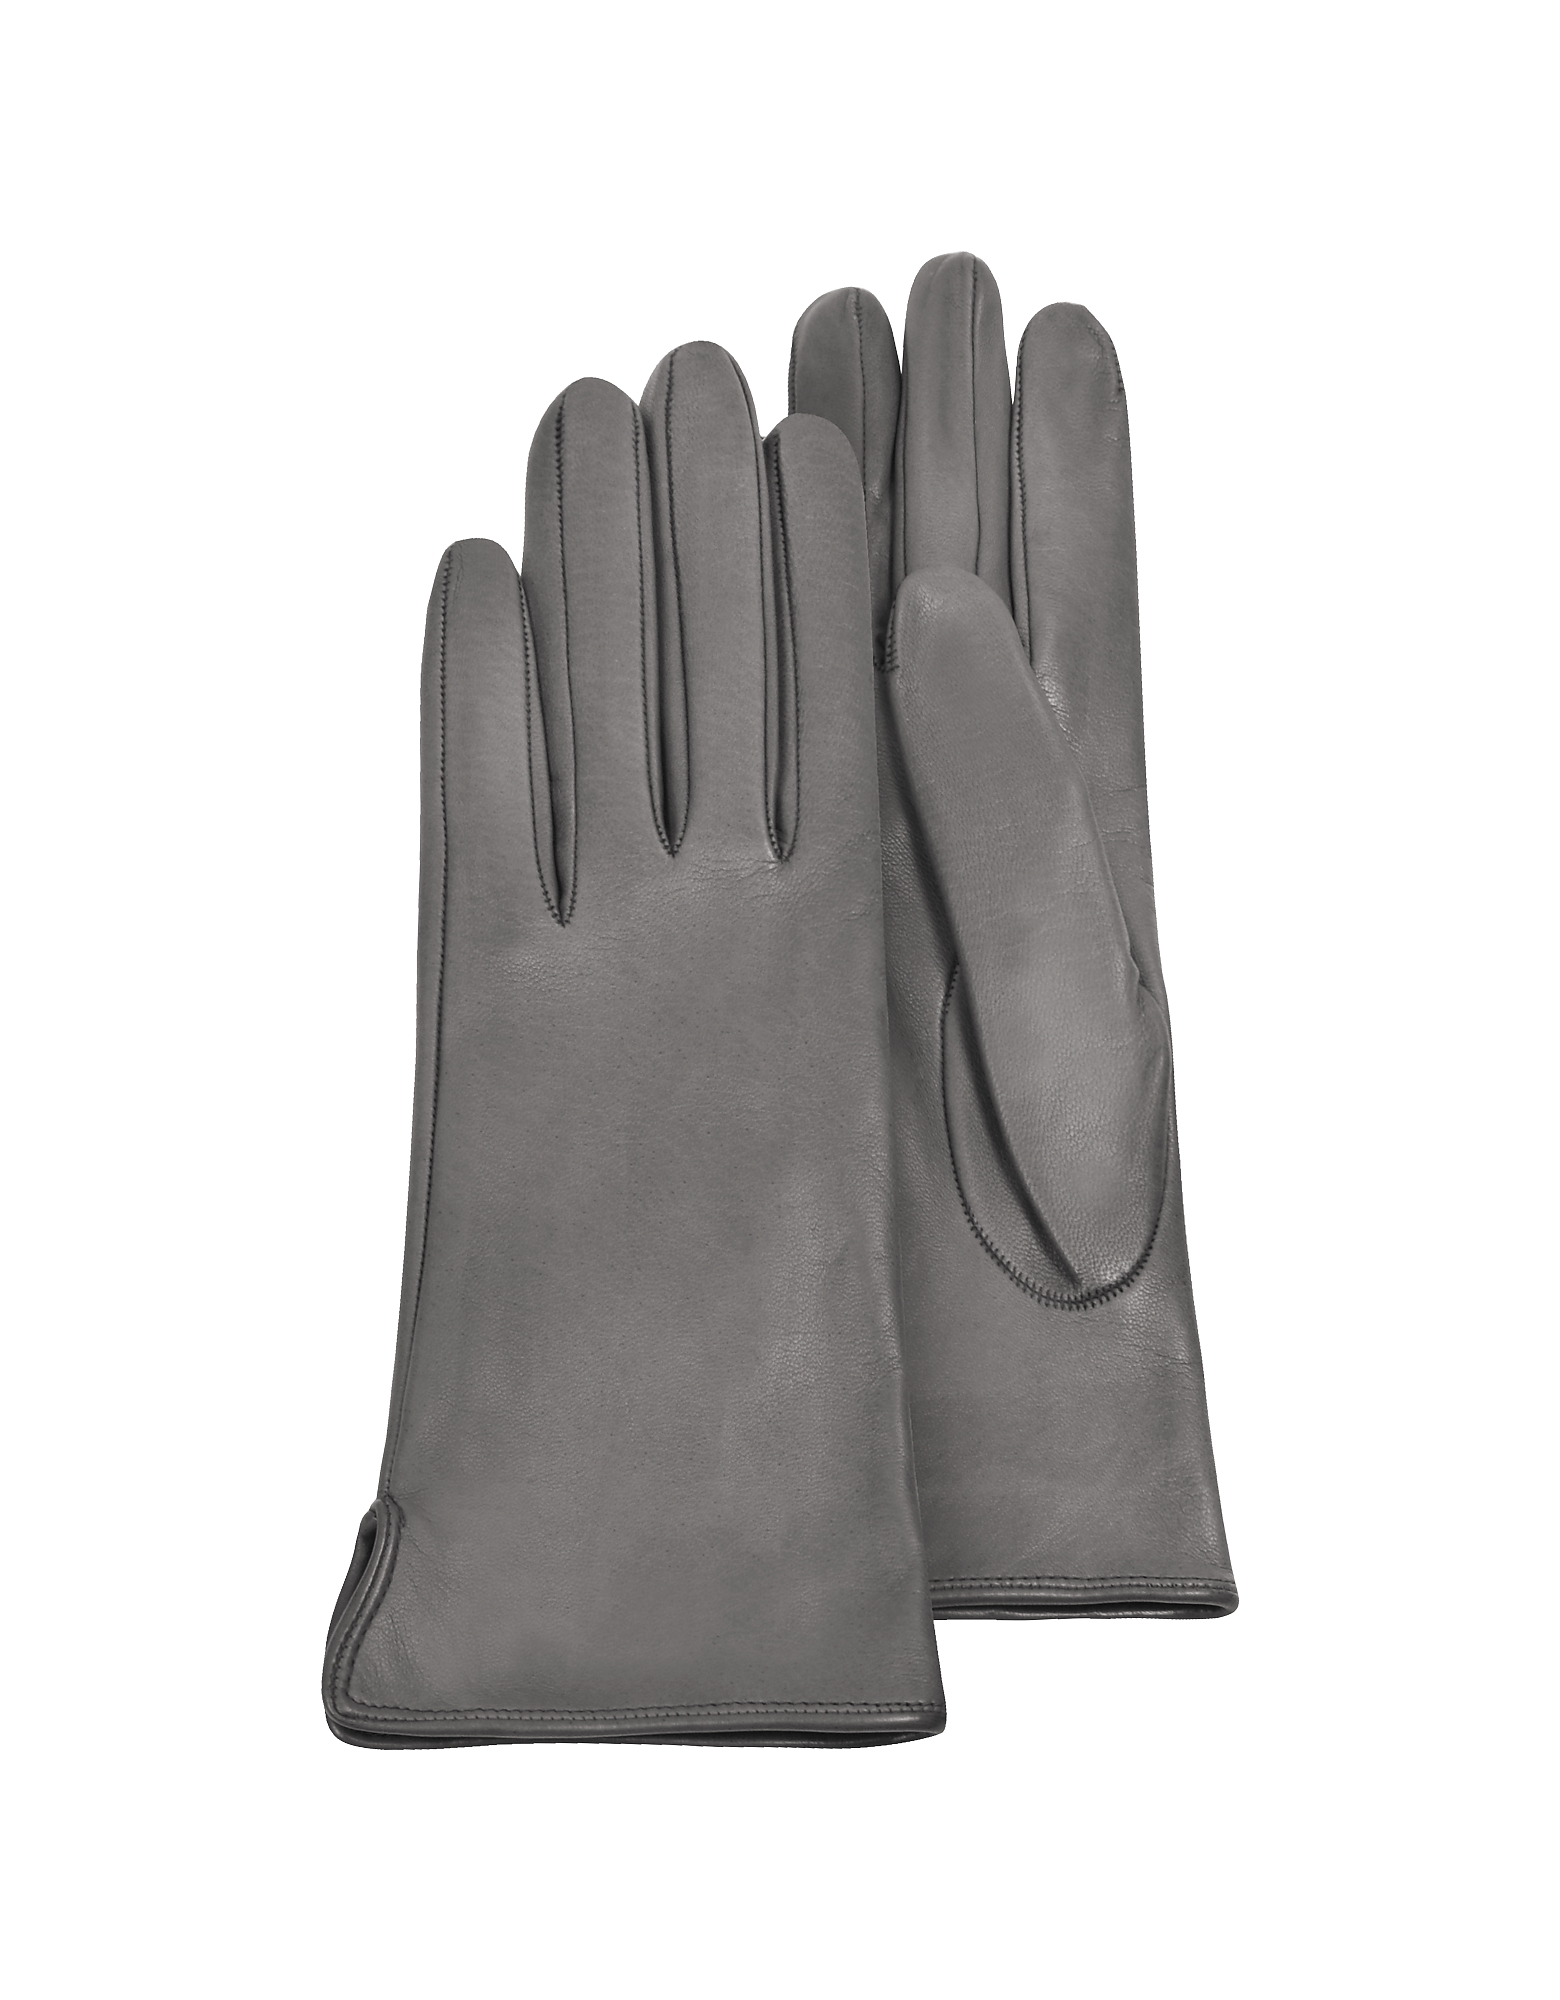 Forzieri Women's Gloves, Women's Gray Calf Leather Gloves w/ Silk Lining